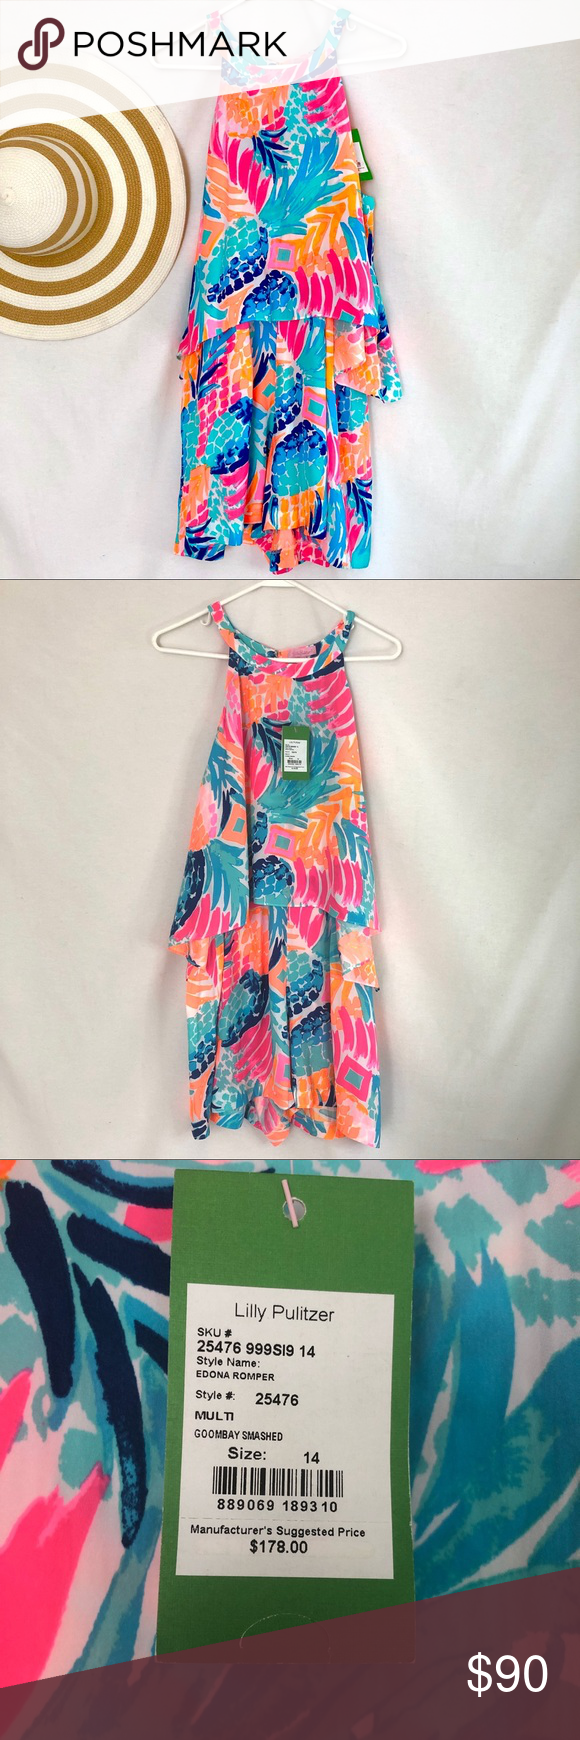 1b80a73d5165 🌴Lilly Pulitzer Edona Romper in Goombay Smashed New with tags! Beautiful  romper